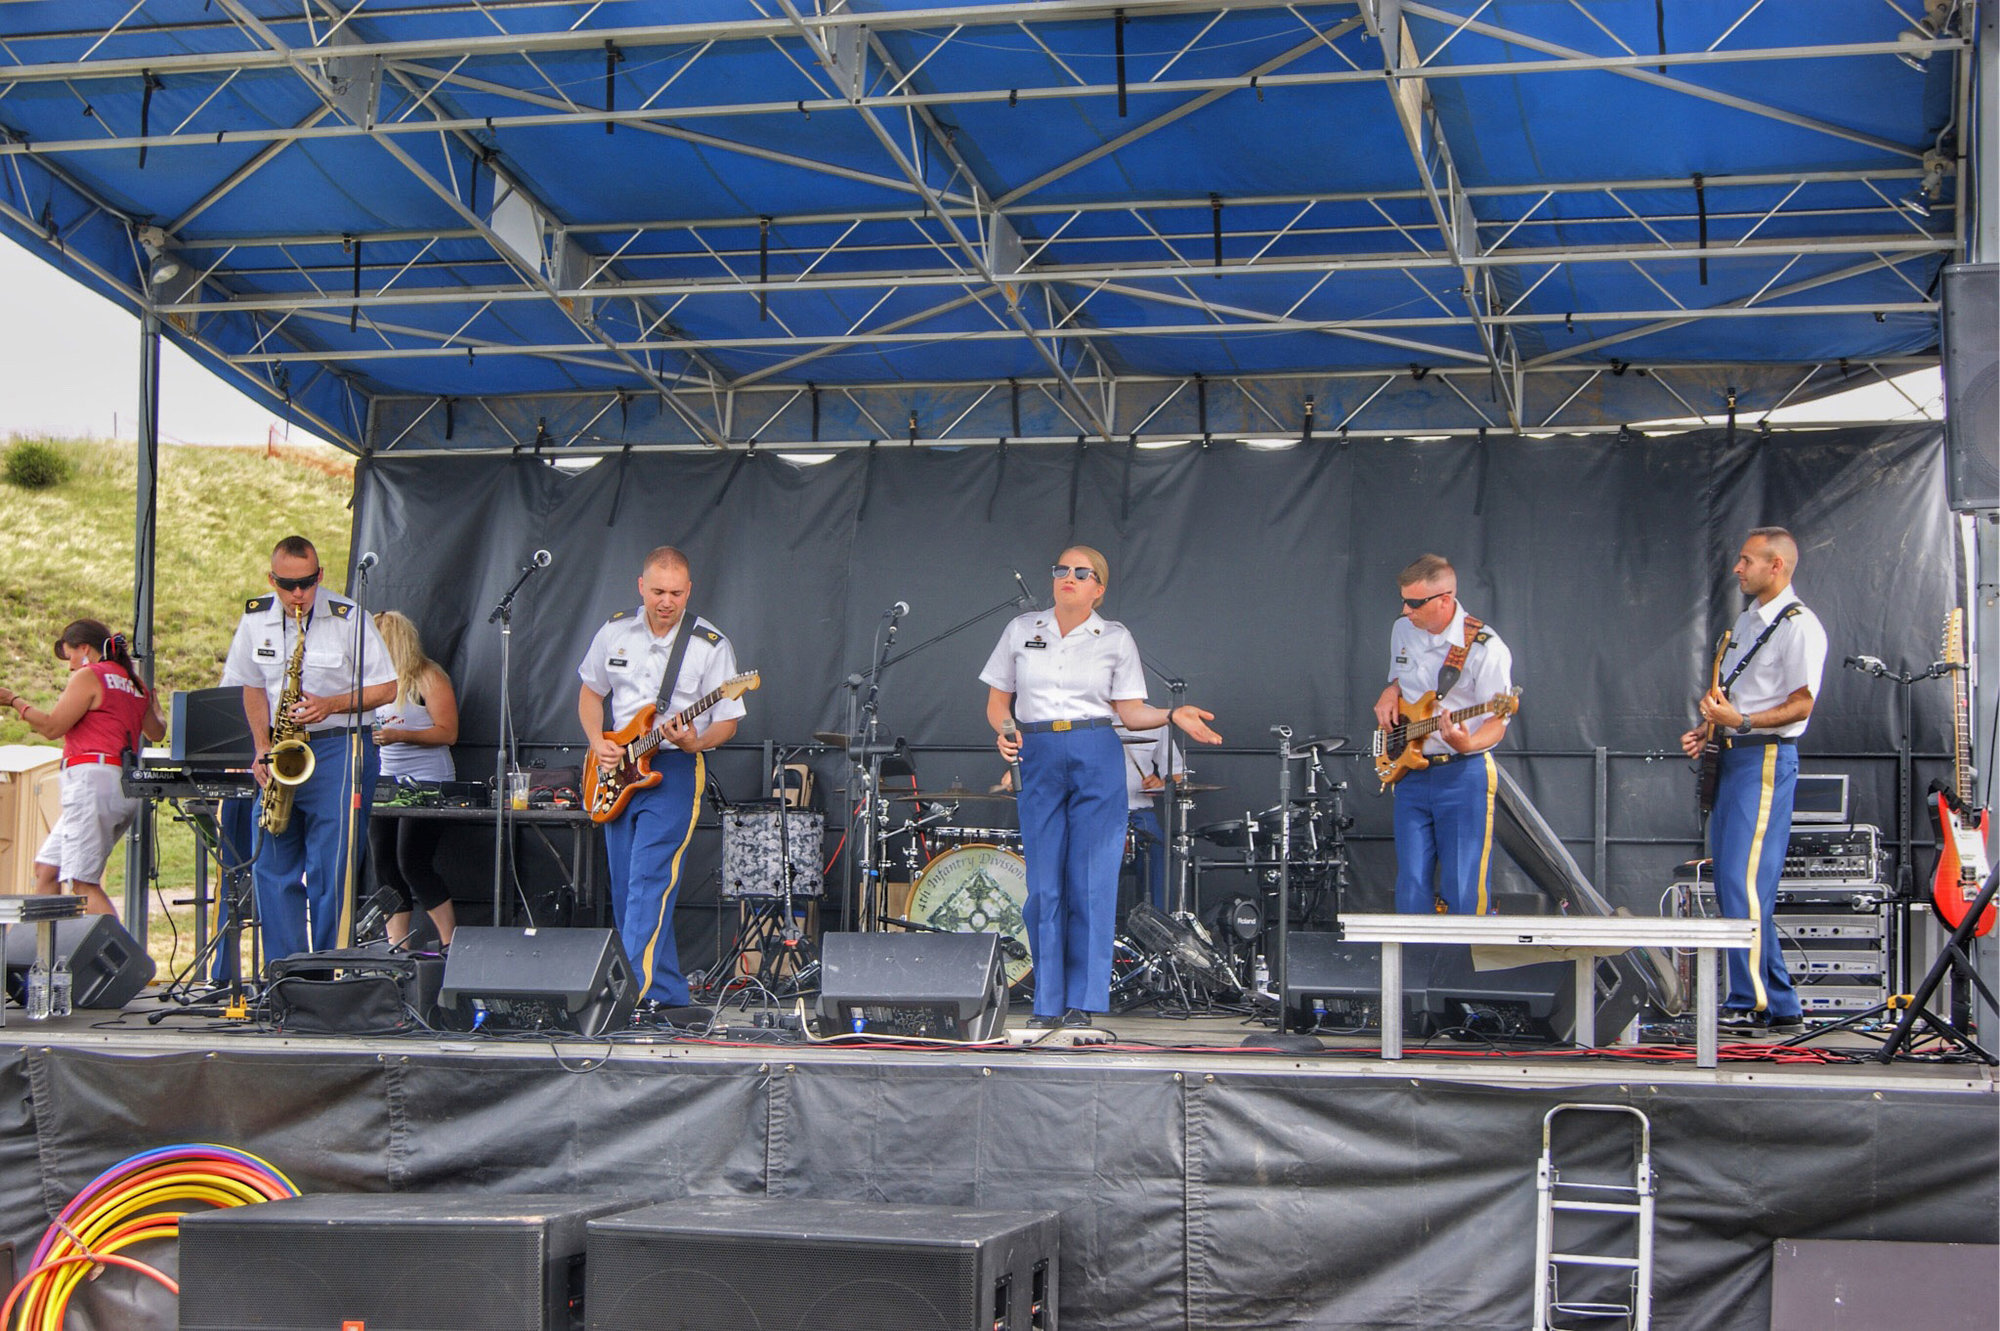 Colorado Springs Things to Do - Army Band